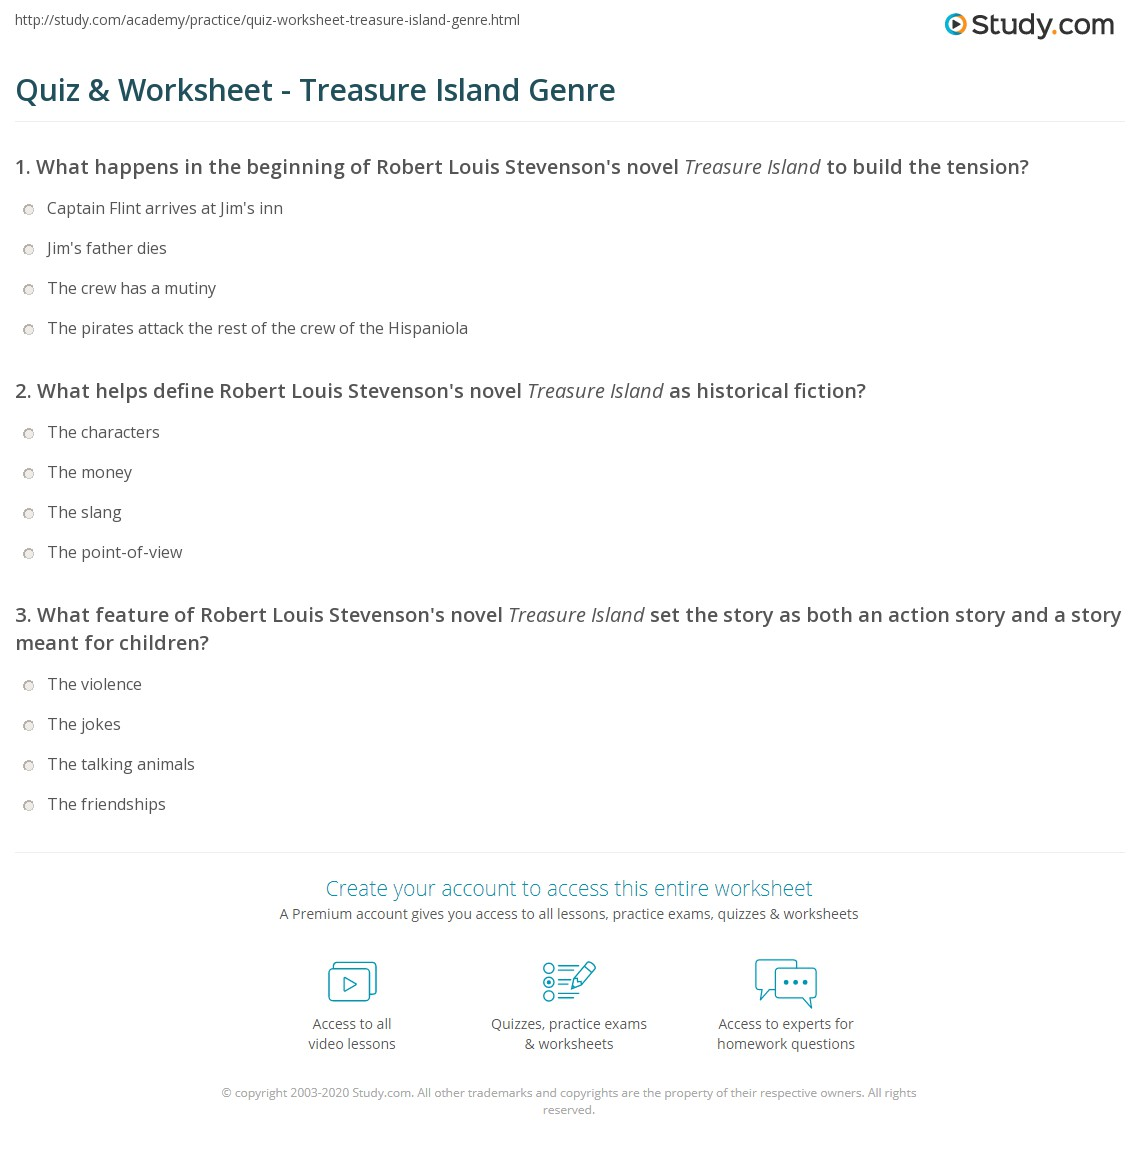 Quiz & Worksheet - Treasure Island Genre | Study.com